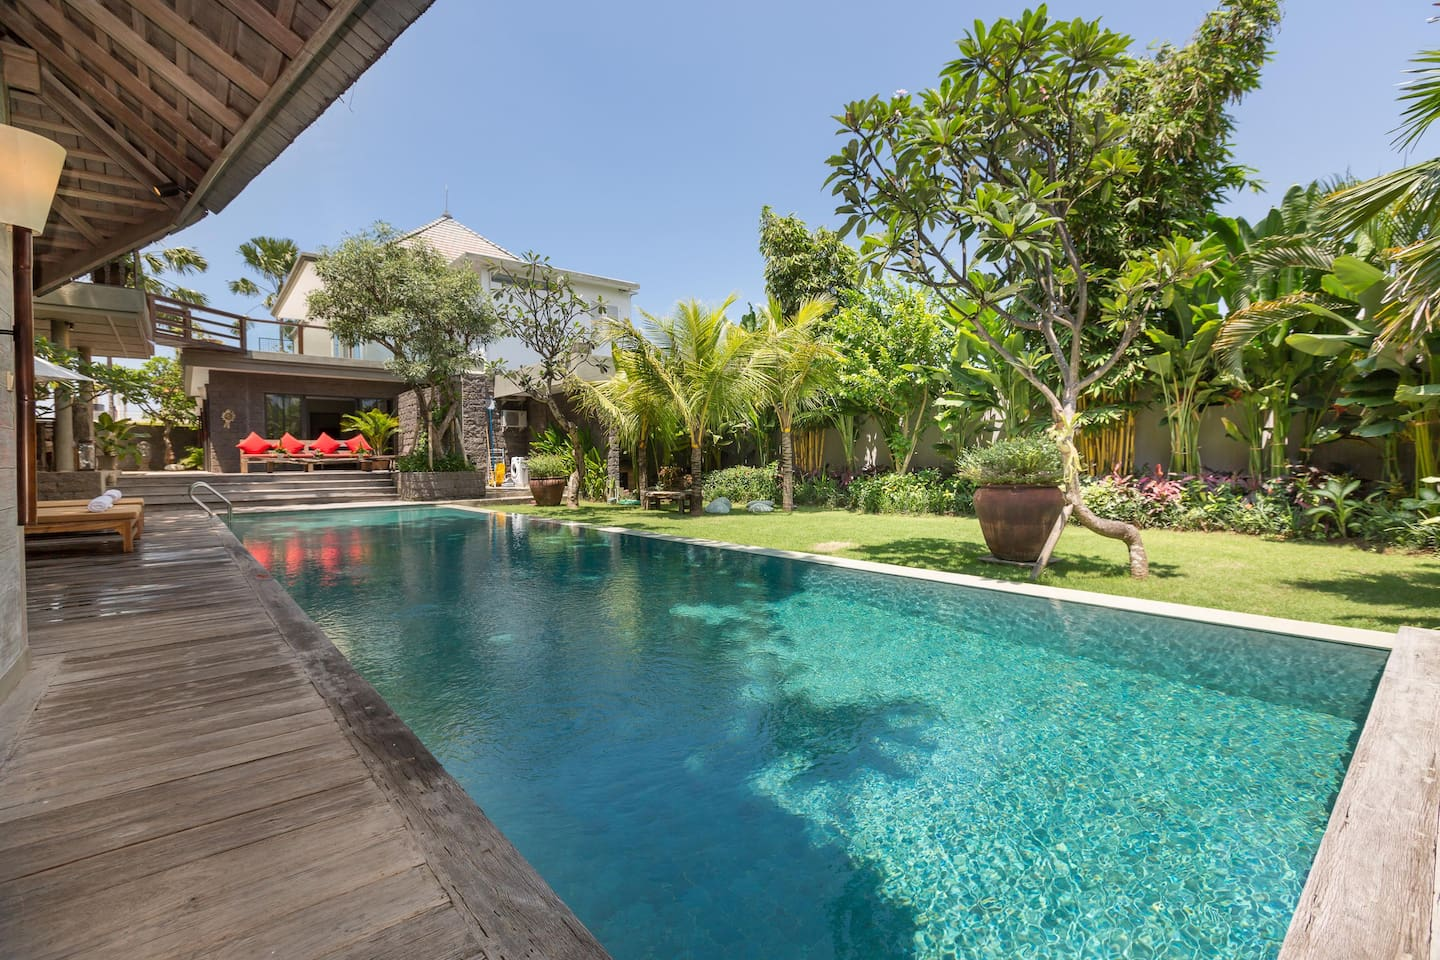 The main swimming pool surrounded by sundecks and green garden